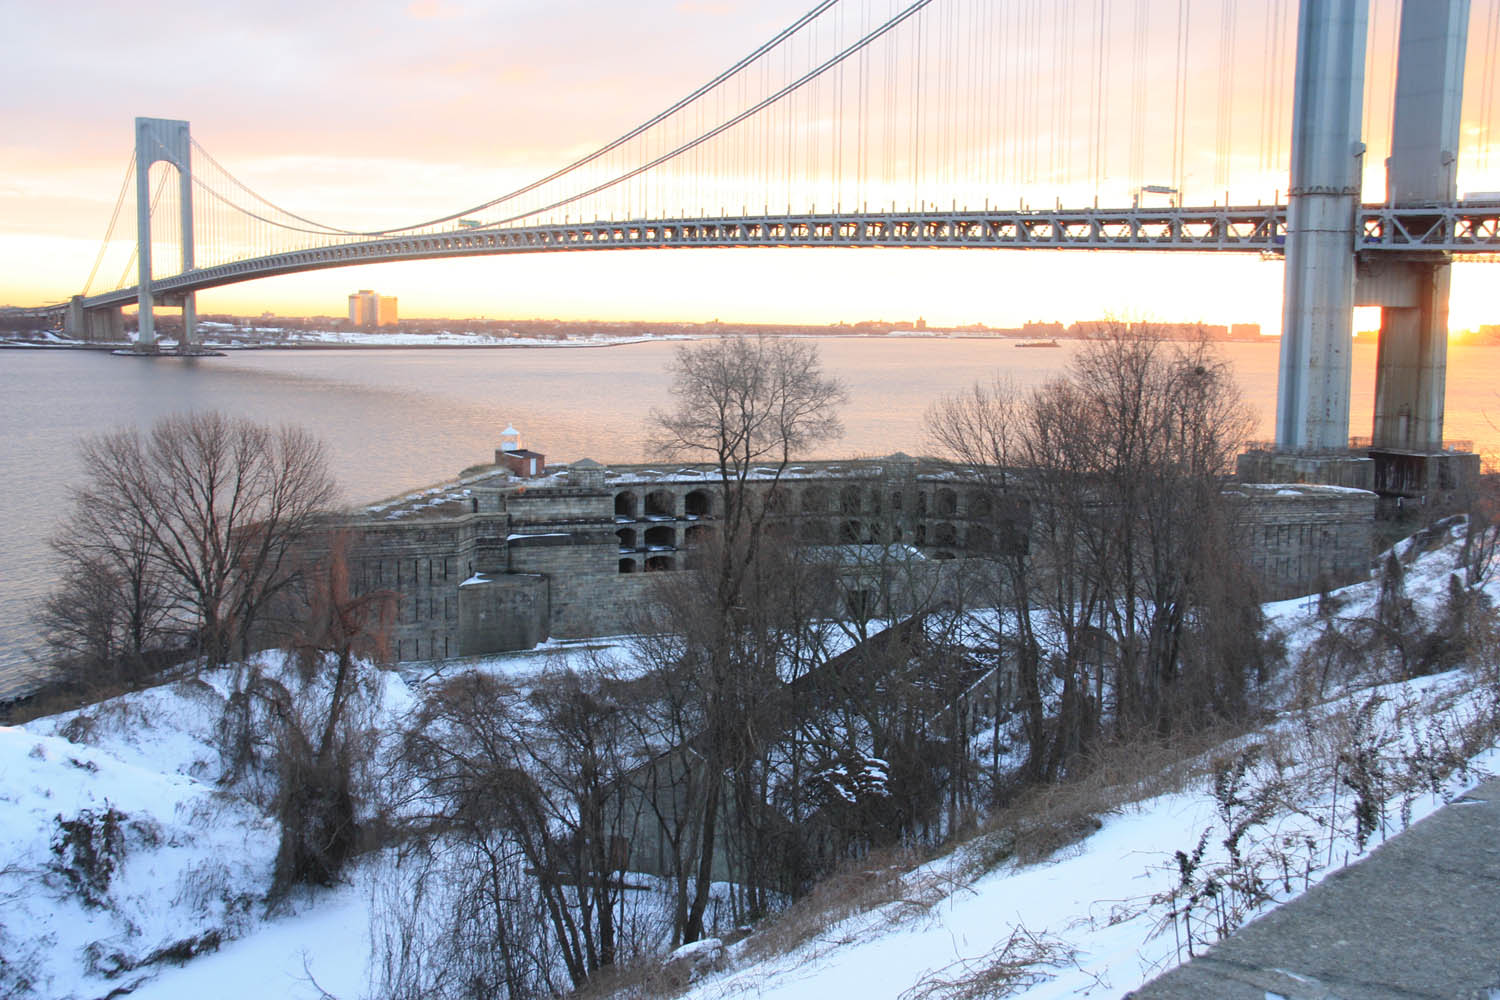 The first part of Staten Island seen by drivers across the Verrazano Bridge is Fort Wadsworth, part of Gateway's Staten Island Unit.